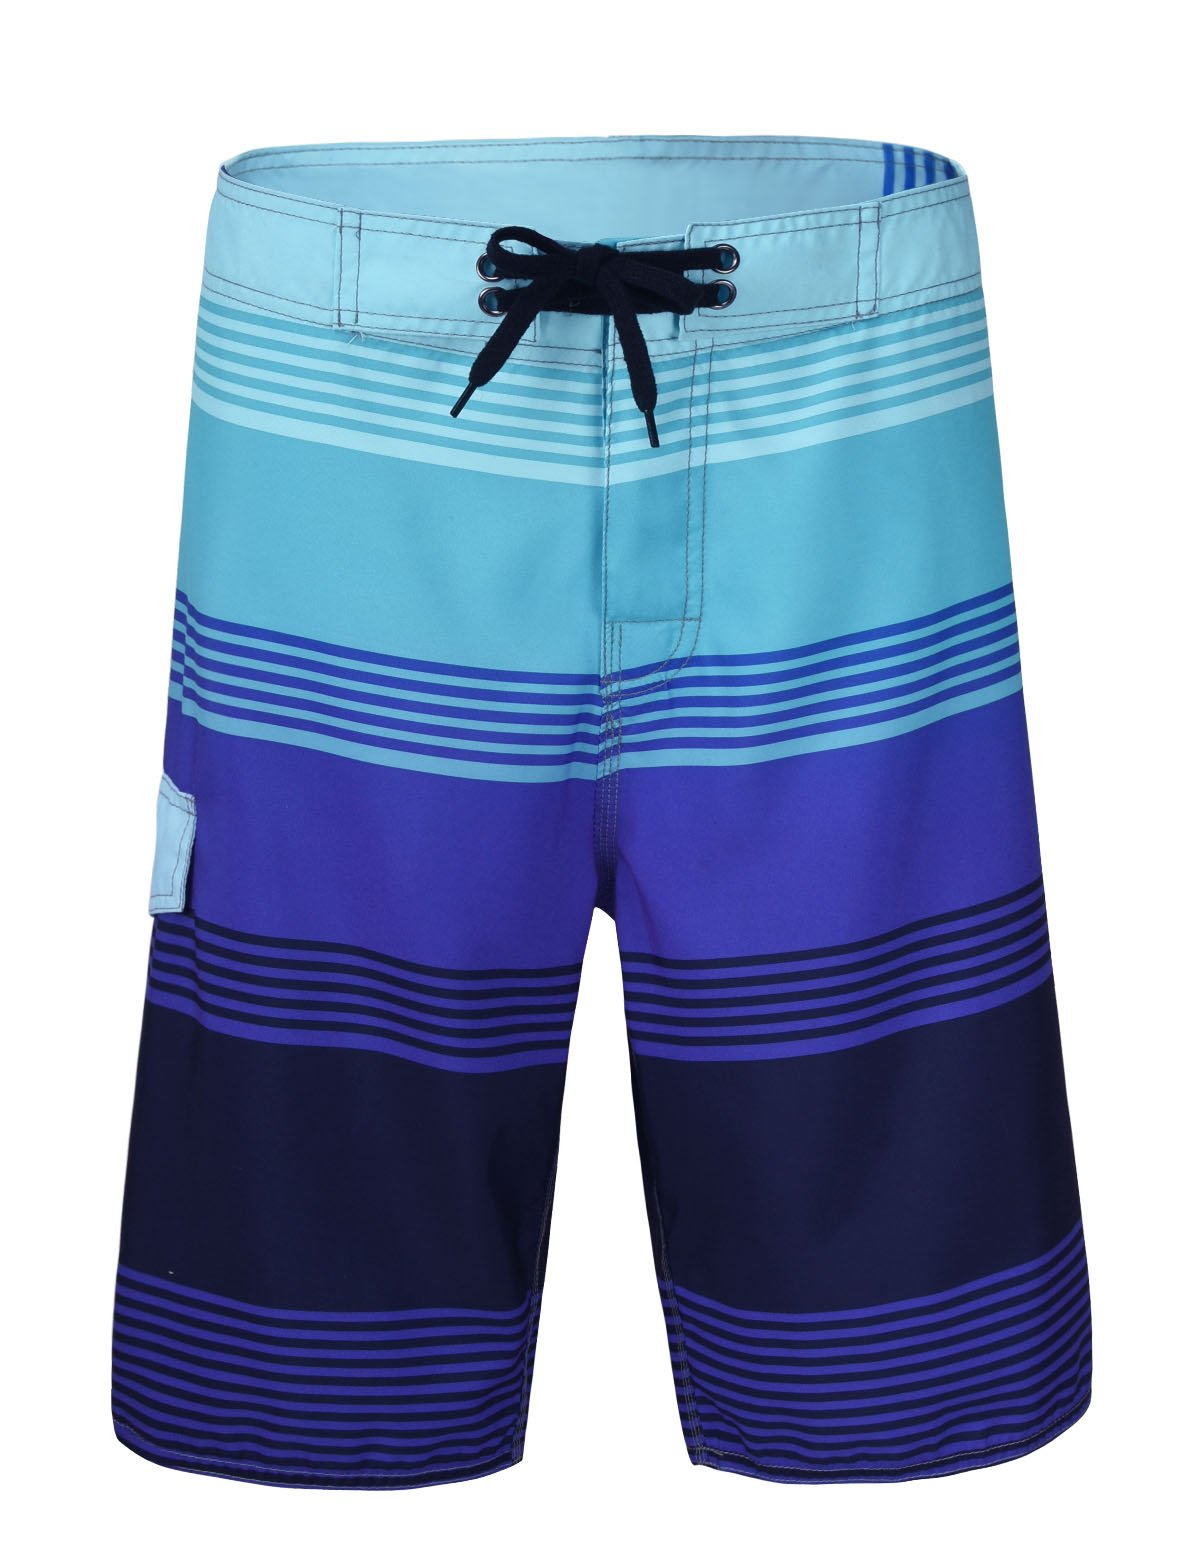 NONWE Men's Print Summer Holidays Swimming Beach Shorts 11920-34 by Nonwe